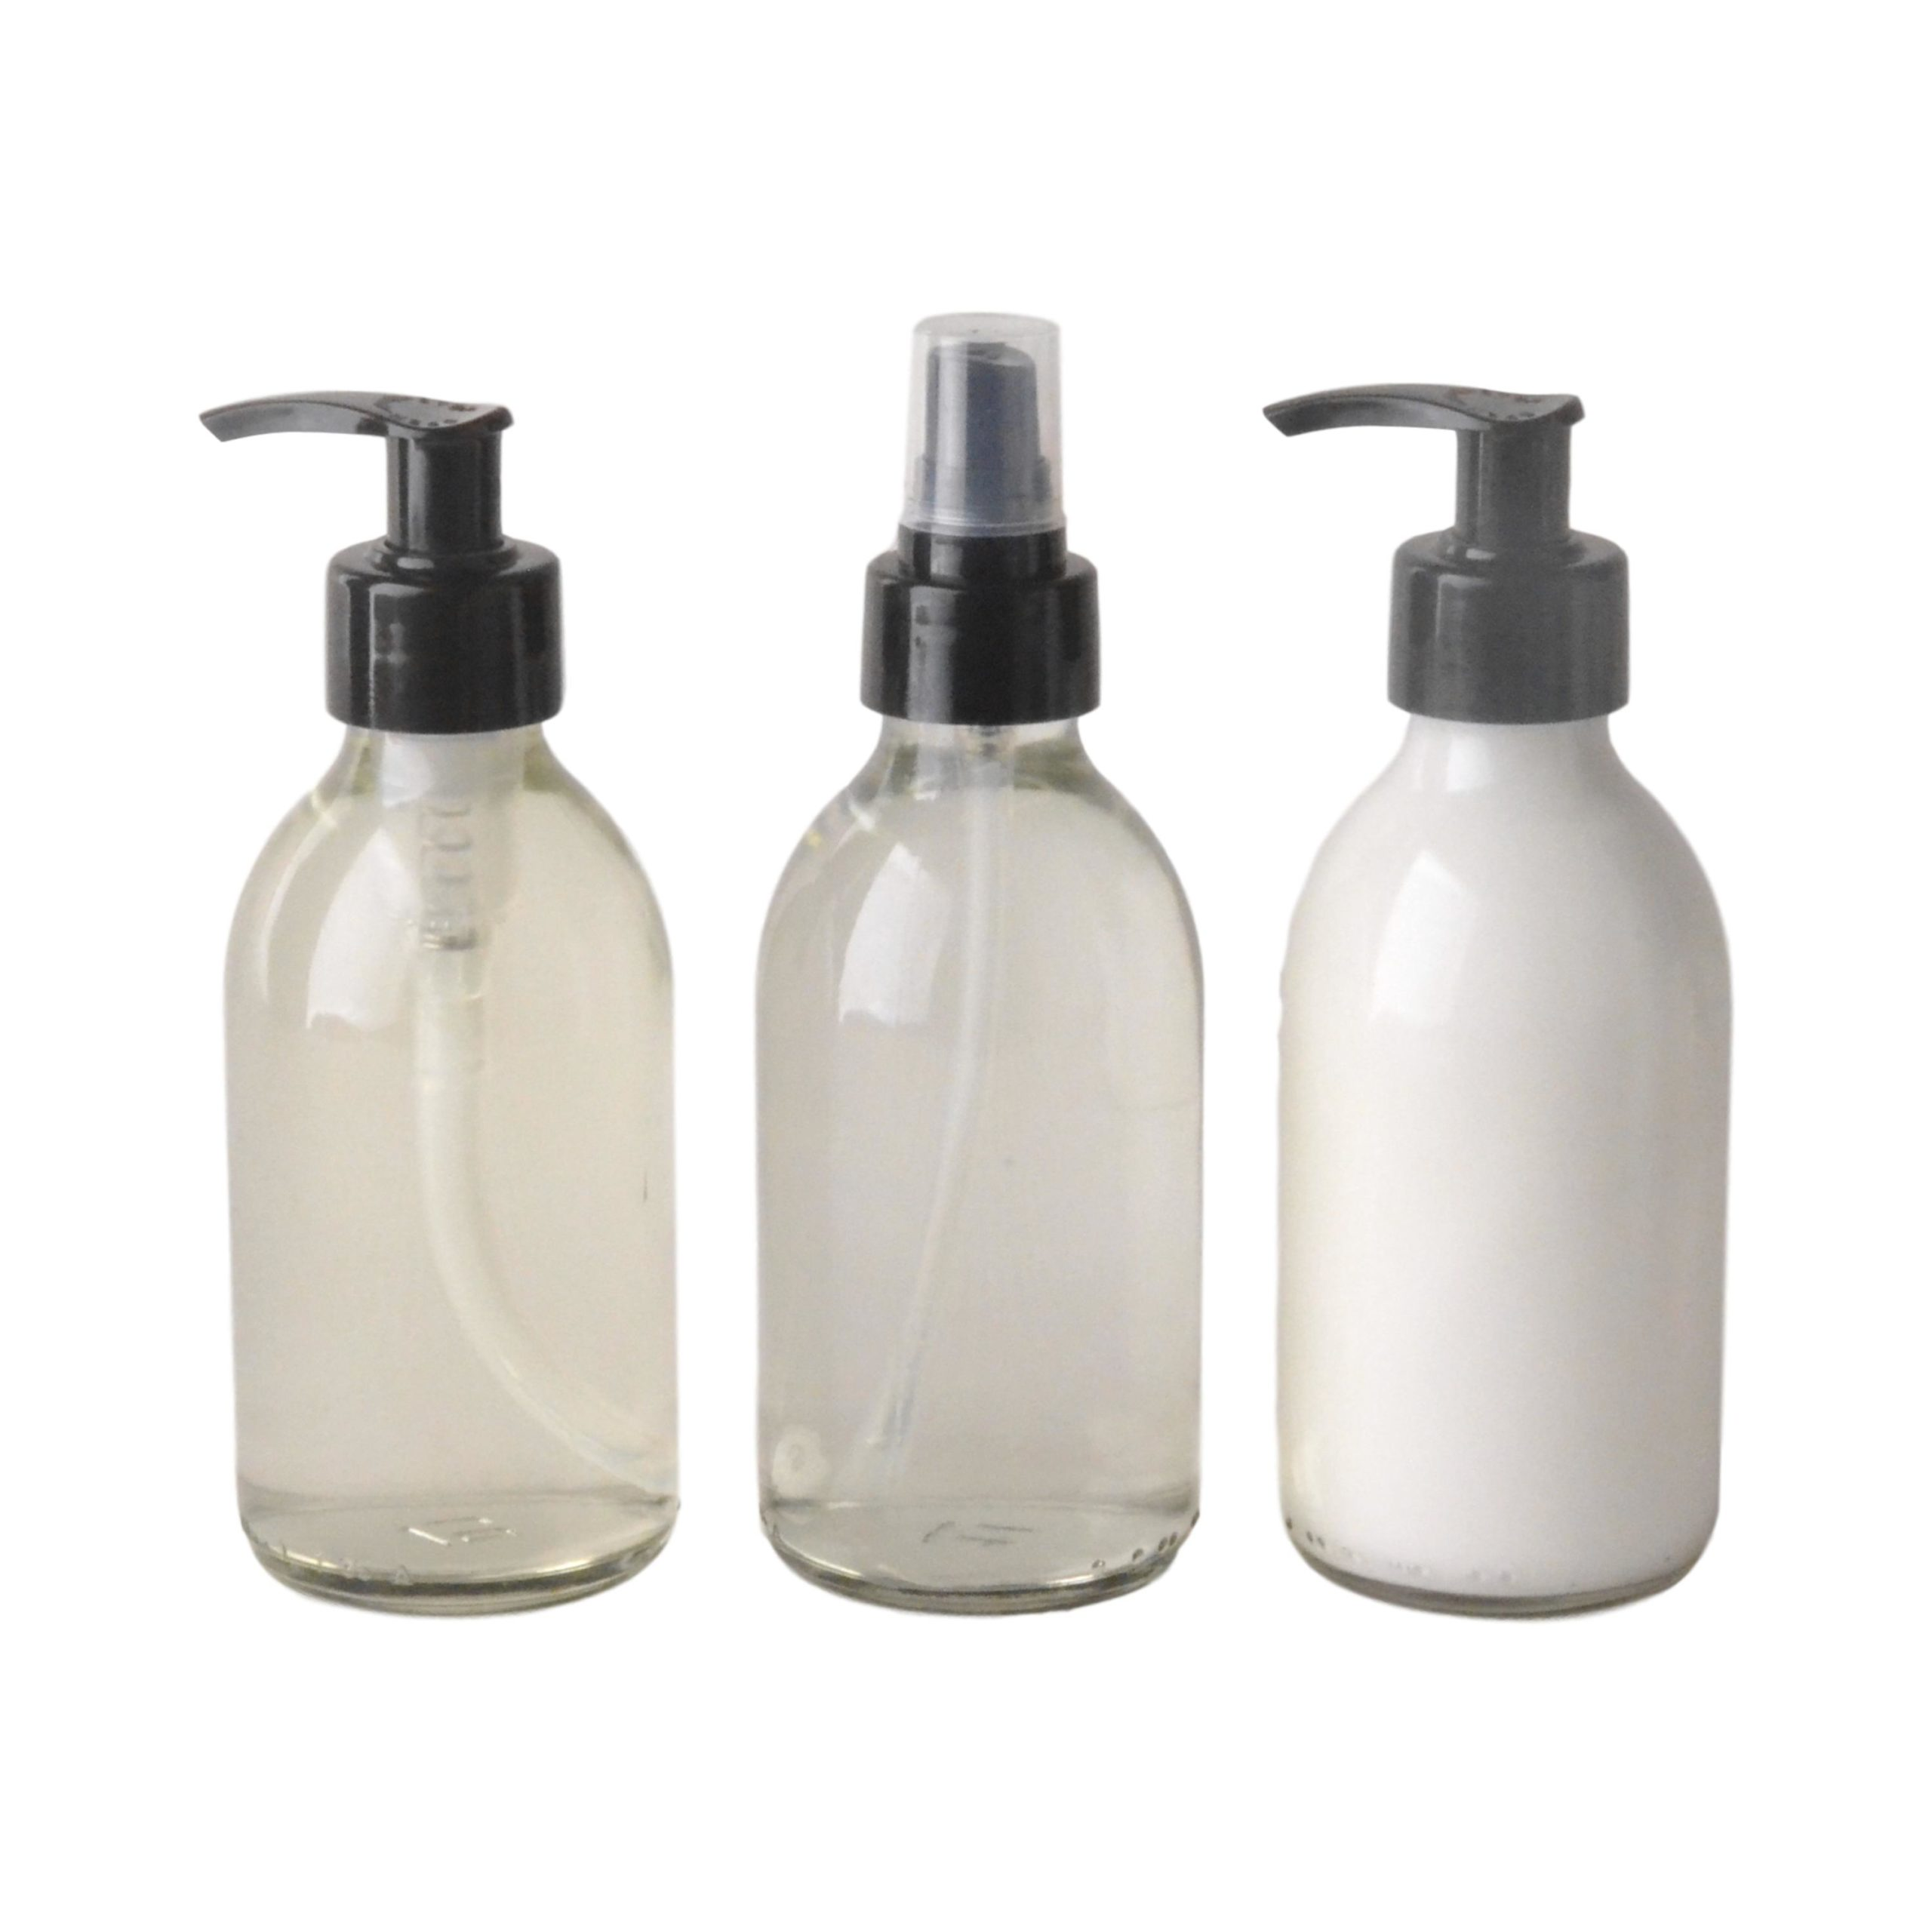 Bulk-Body-Care-Lotion-Wash-Room-And-Linen-Perfume-200Ml-6-Units-Each-Amber-Bottles